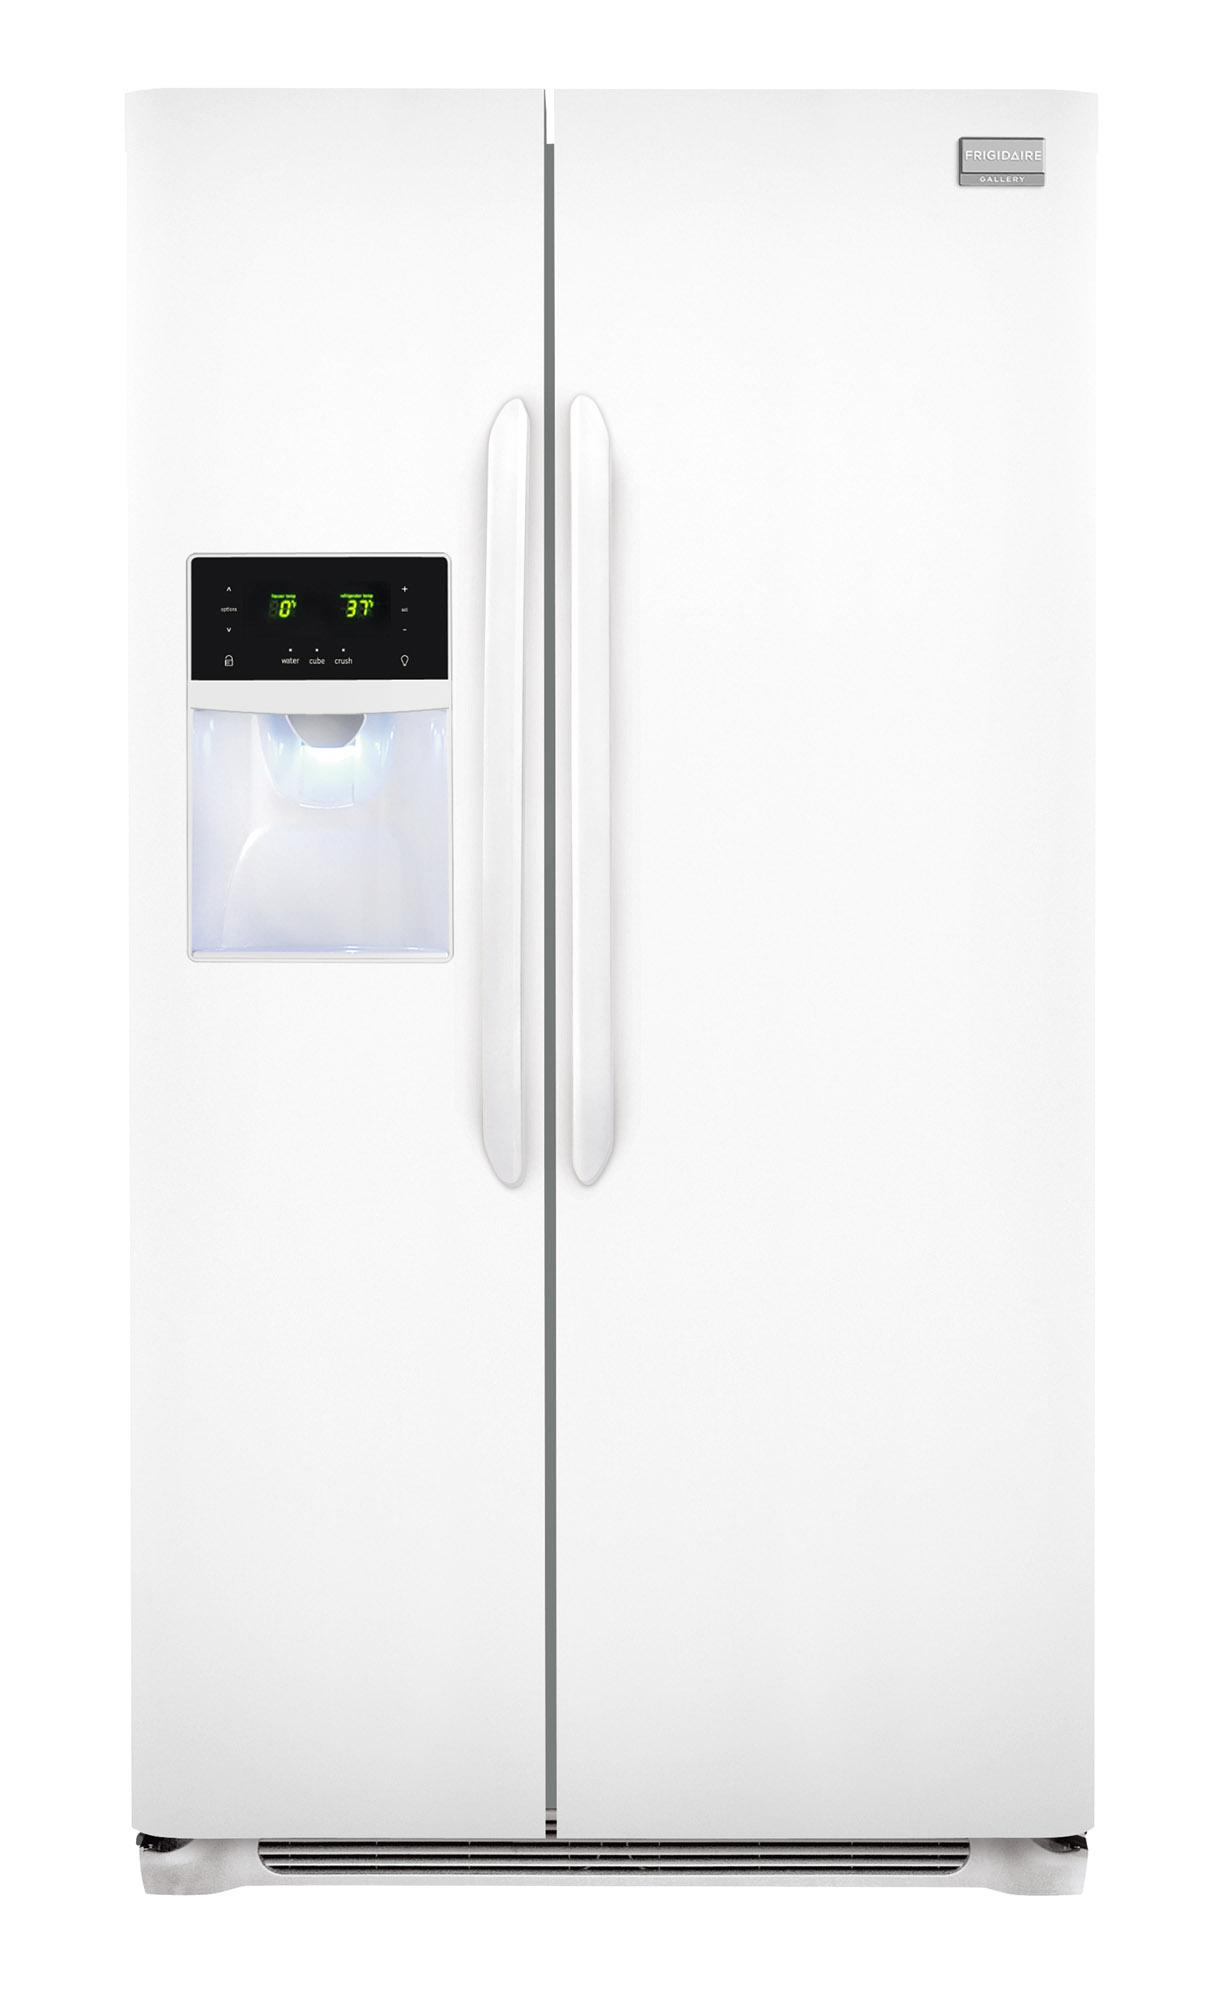 Frigidaire Frigidaire Gallery Refrigerators 26 Cu. Ft. Side-by-Side Refrigerator - Item Number: FGHS2631PP